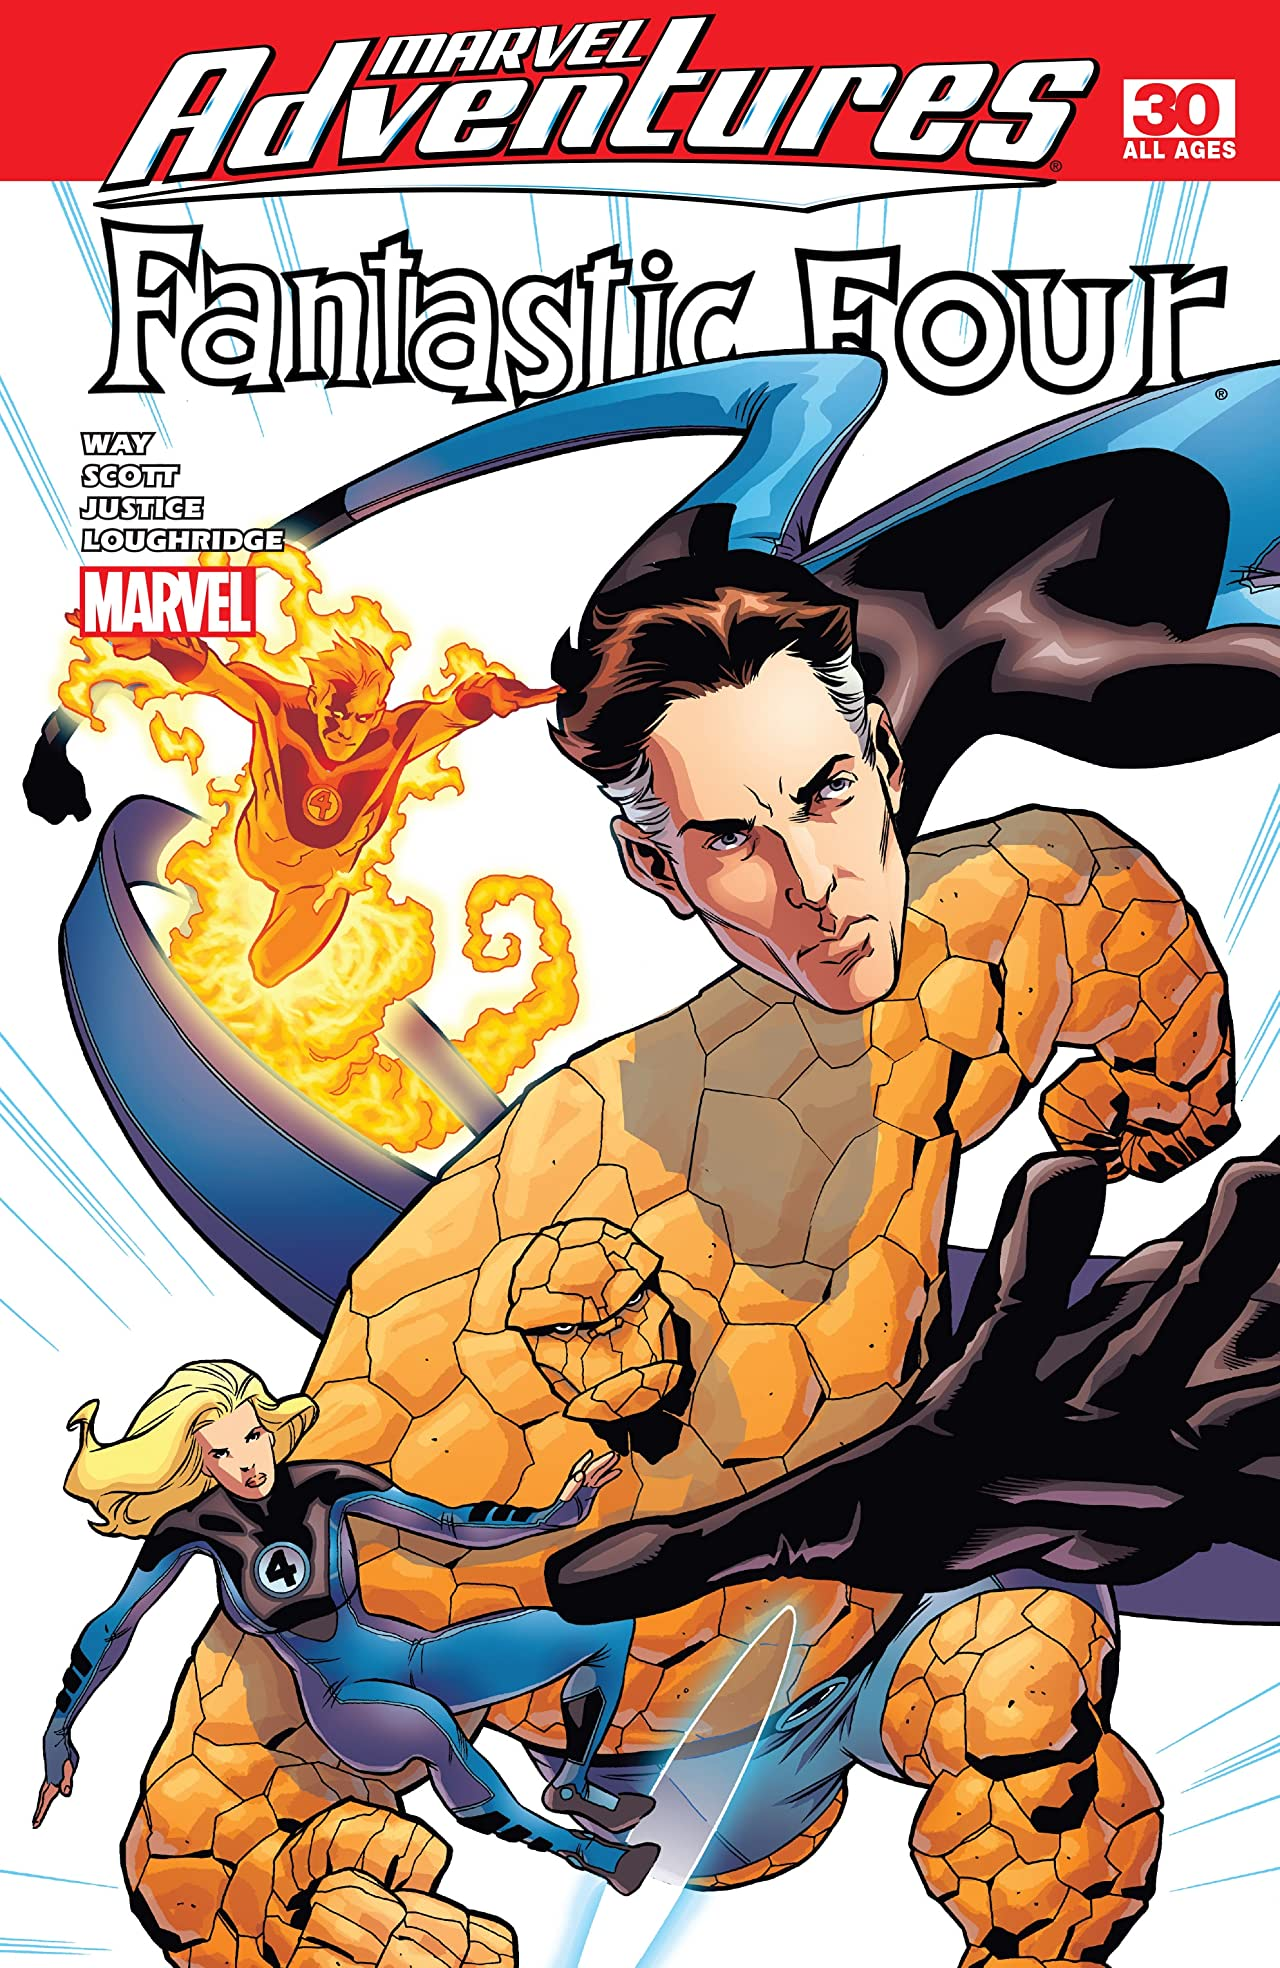 Marvel Adventures Fantastic Four (2005-2009) #30